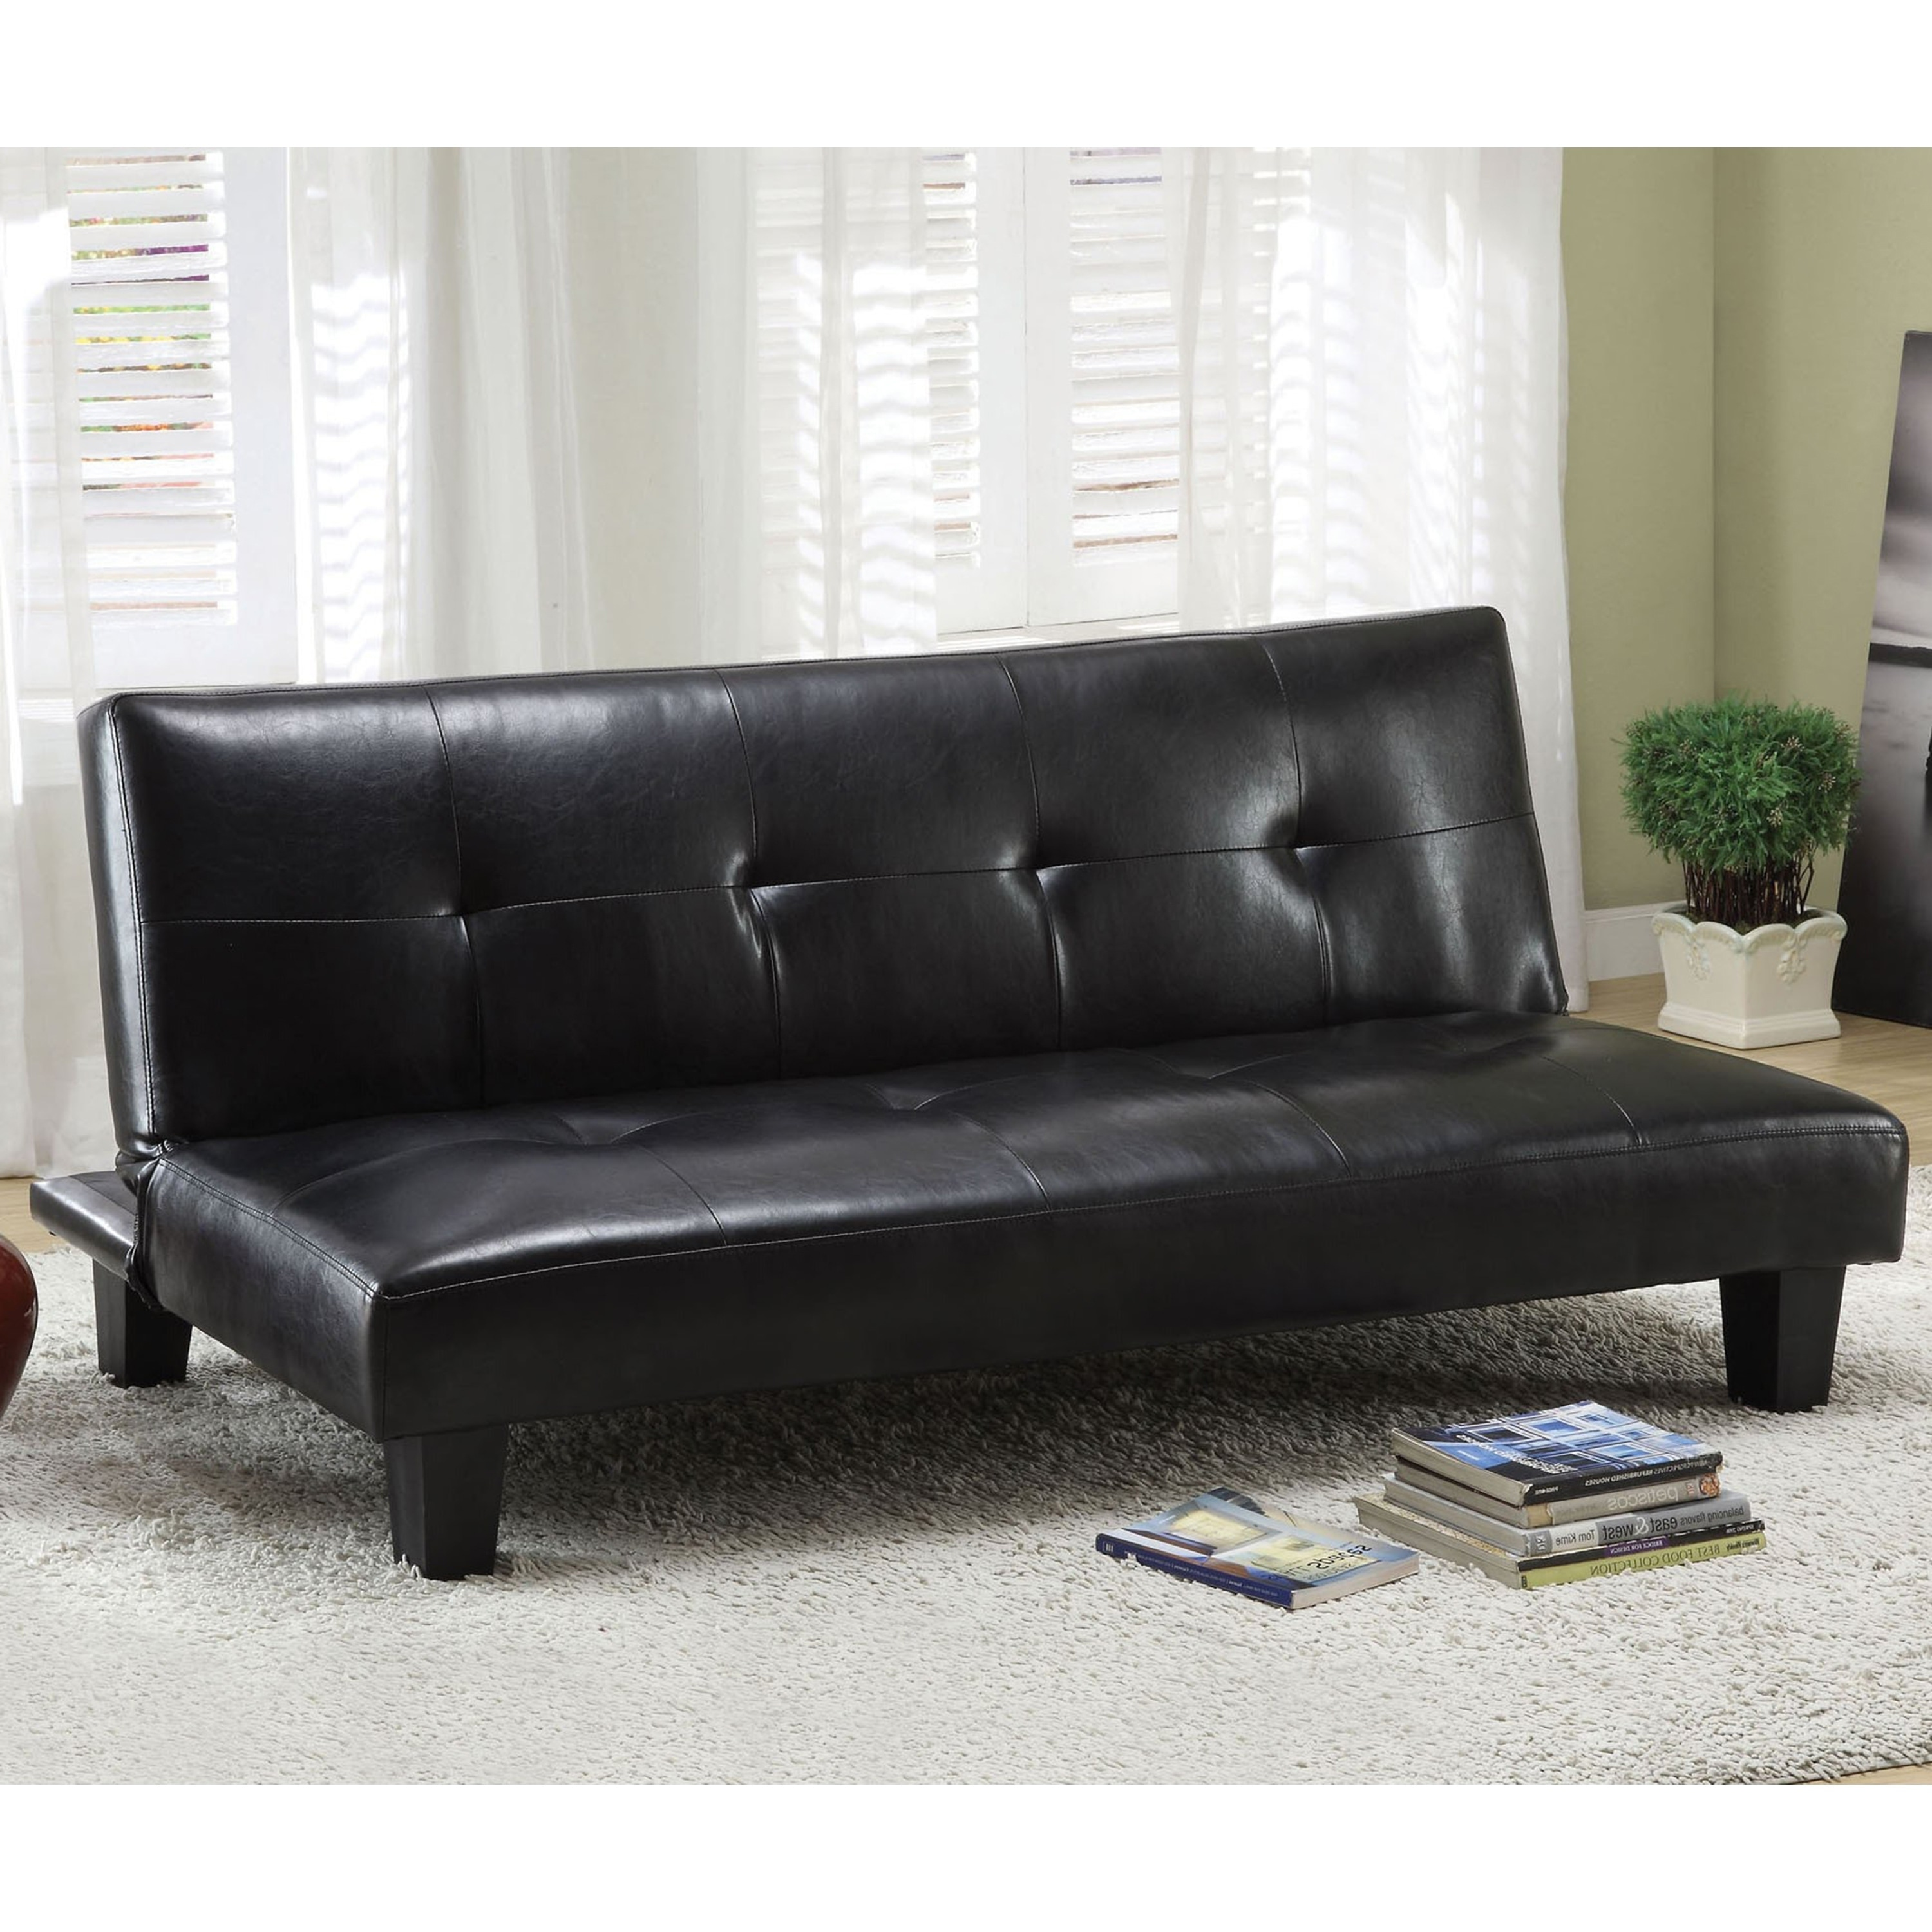 Fabulous Vereno Contemporary Tufted Black Leatherette Futon Sofa By Foa Alphanode Cool Chair Designs And Ideas Alphanodeonline